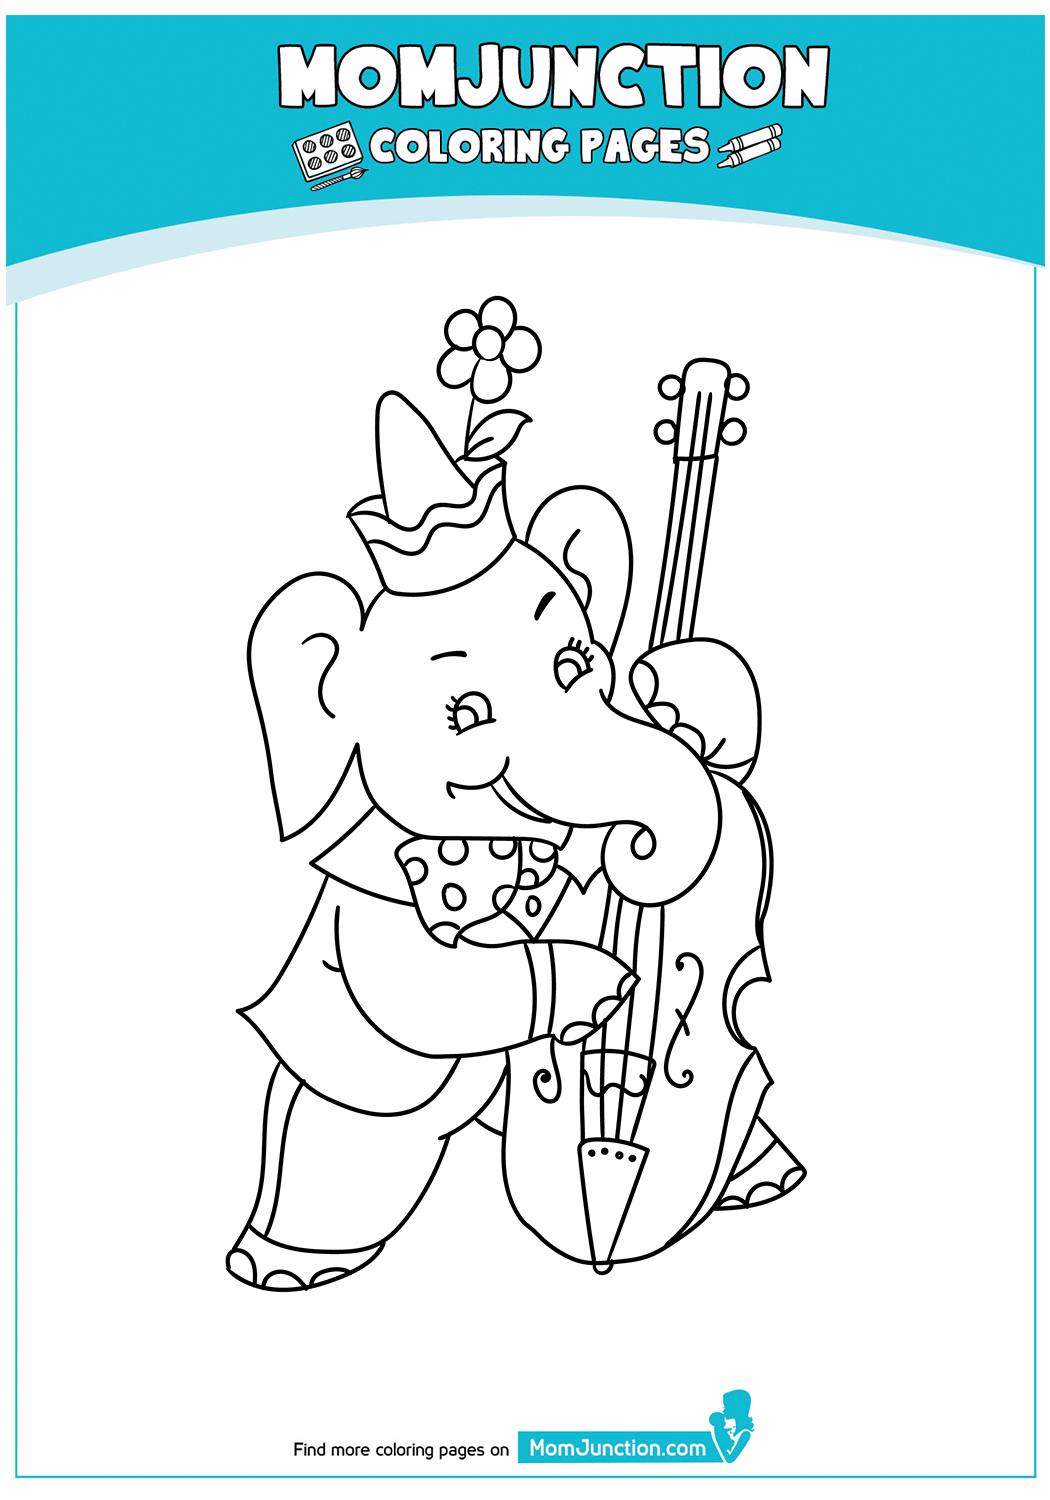 The-Elephant-Playing-Cello-17